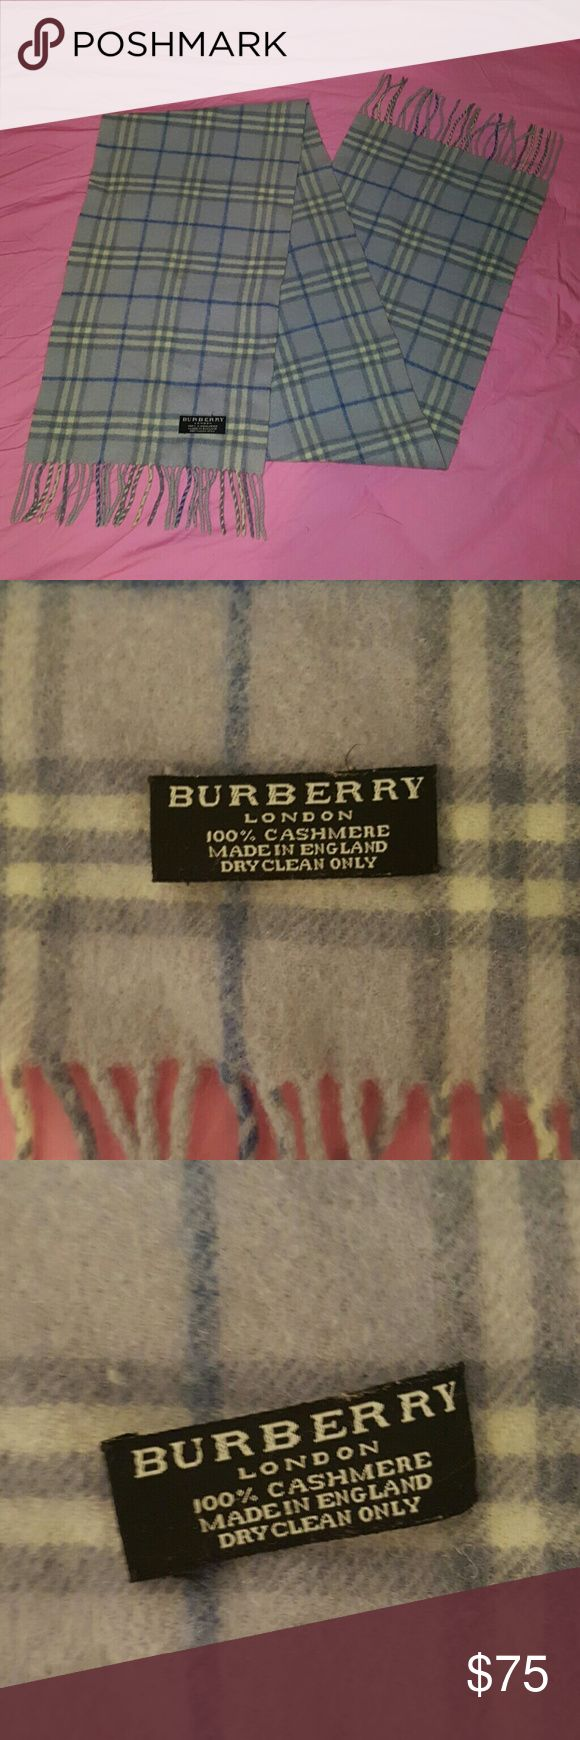 Classic Burberry Scarf Beautiful Burberry Scarf, unique powder blue colors. Its about 2 years old but in great condition. My sis bought it at Bloomindales and then gave it to me.No stains or rips. Only thing is the label is disattatched on the left side, easy fix. No cards or box. 100% cashmere 100% Authentic!! Burberry Accessories Scarves & Wraps